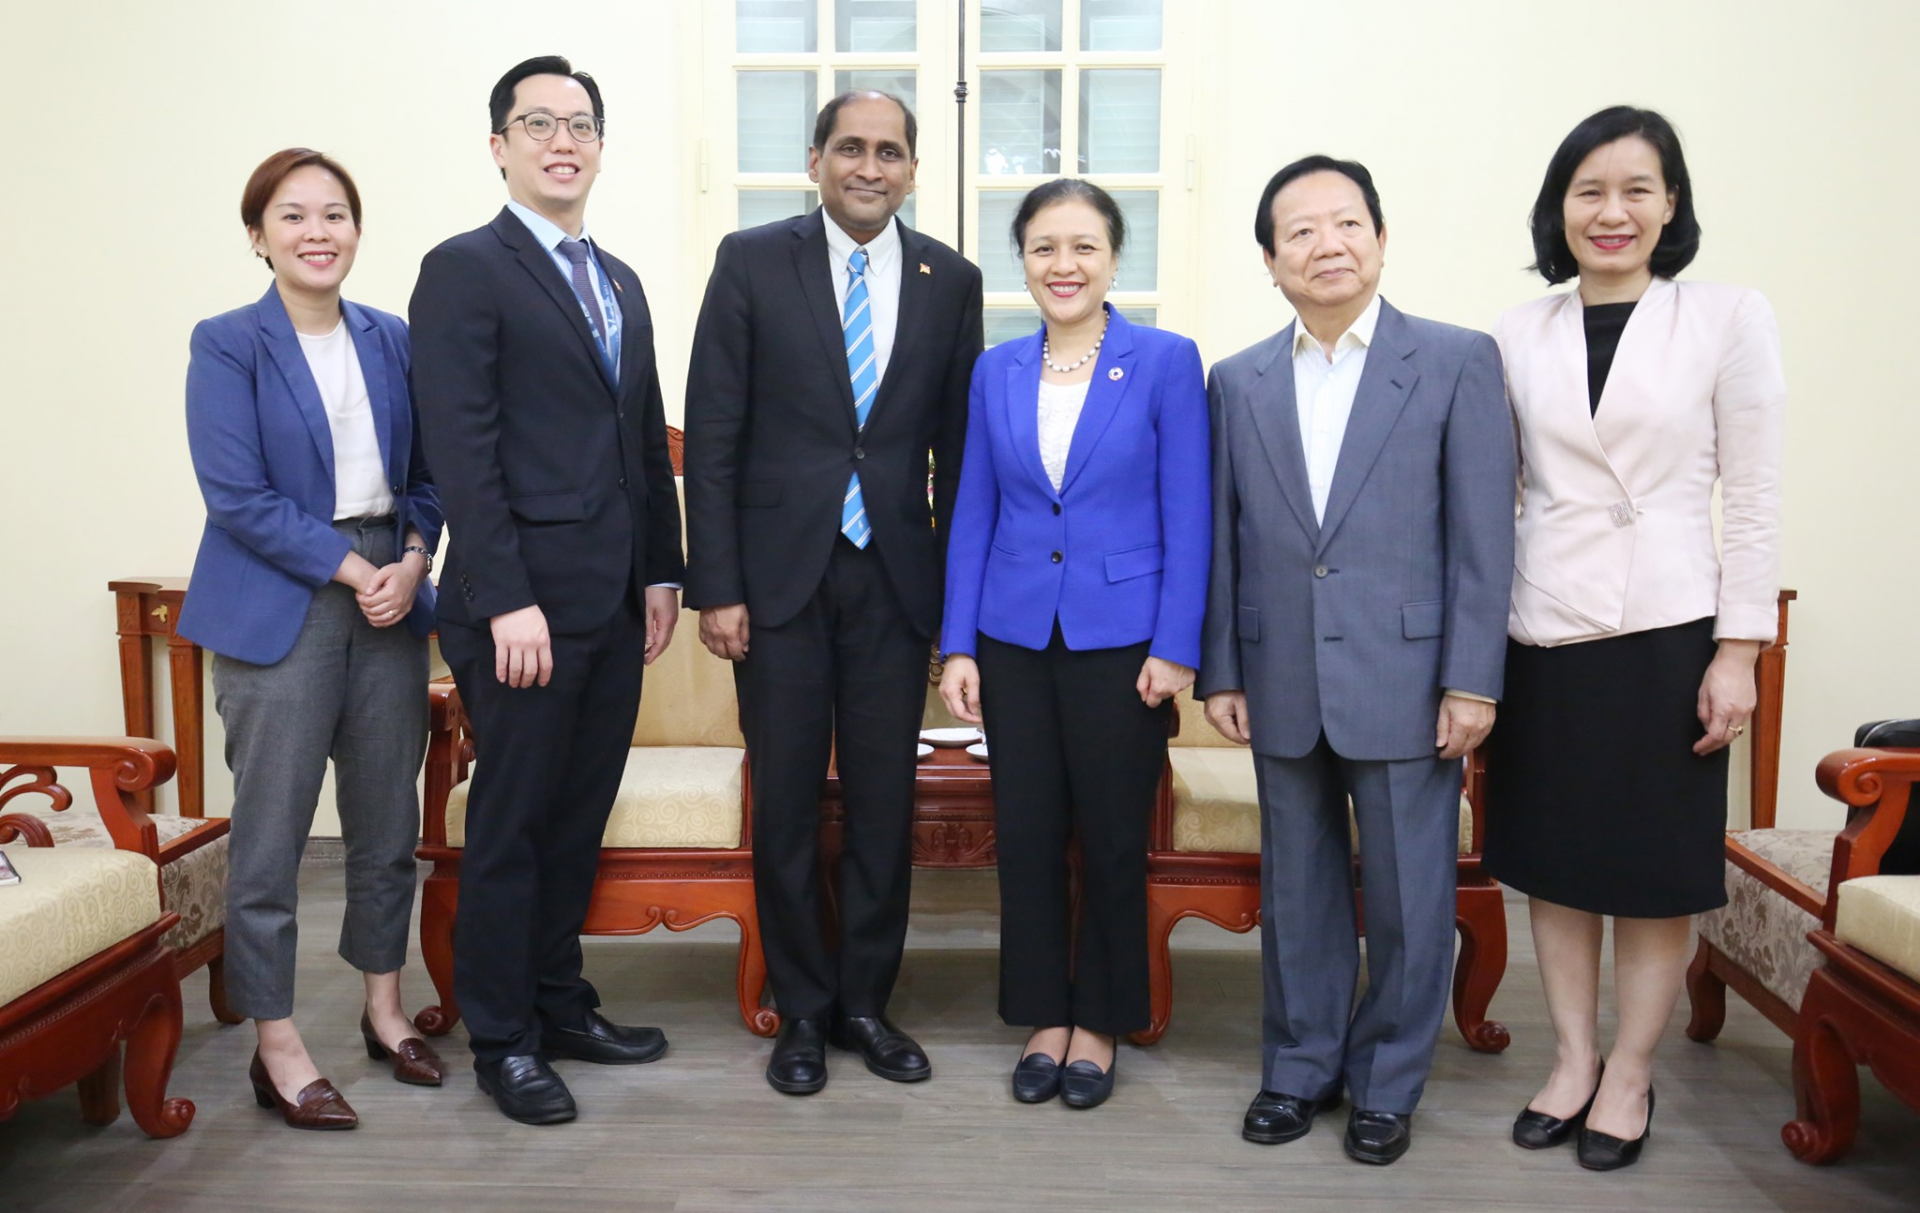 Newly appointed singaporean ambassador to pay a courtesy visit the vufo president